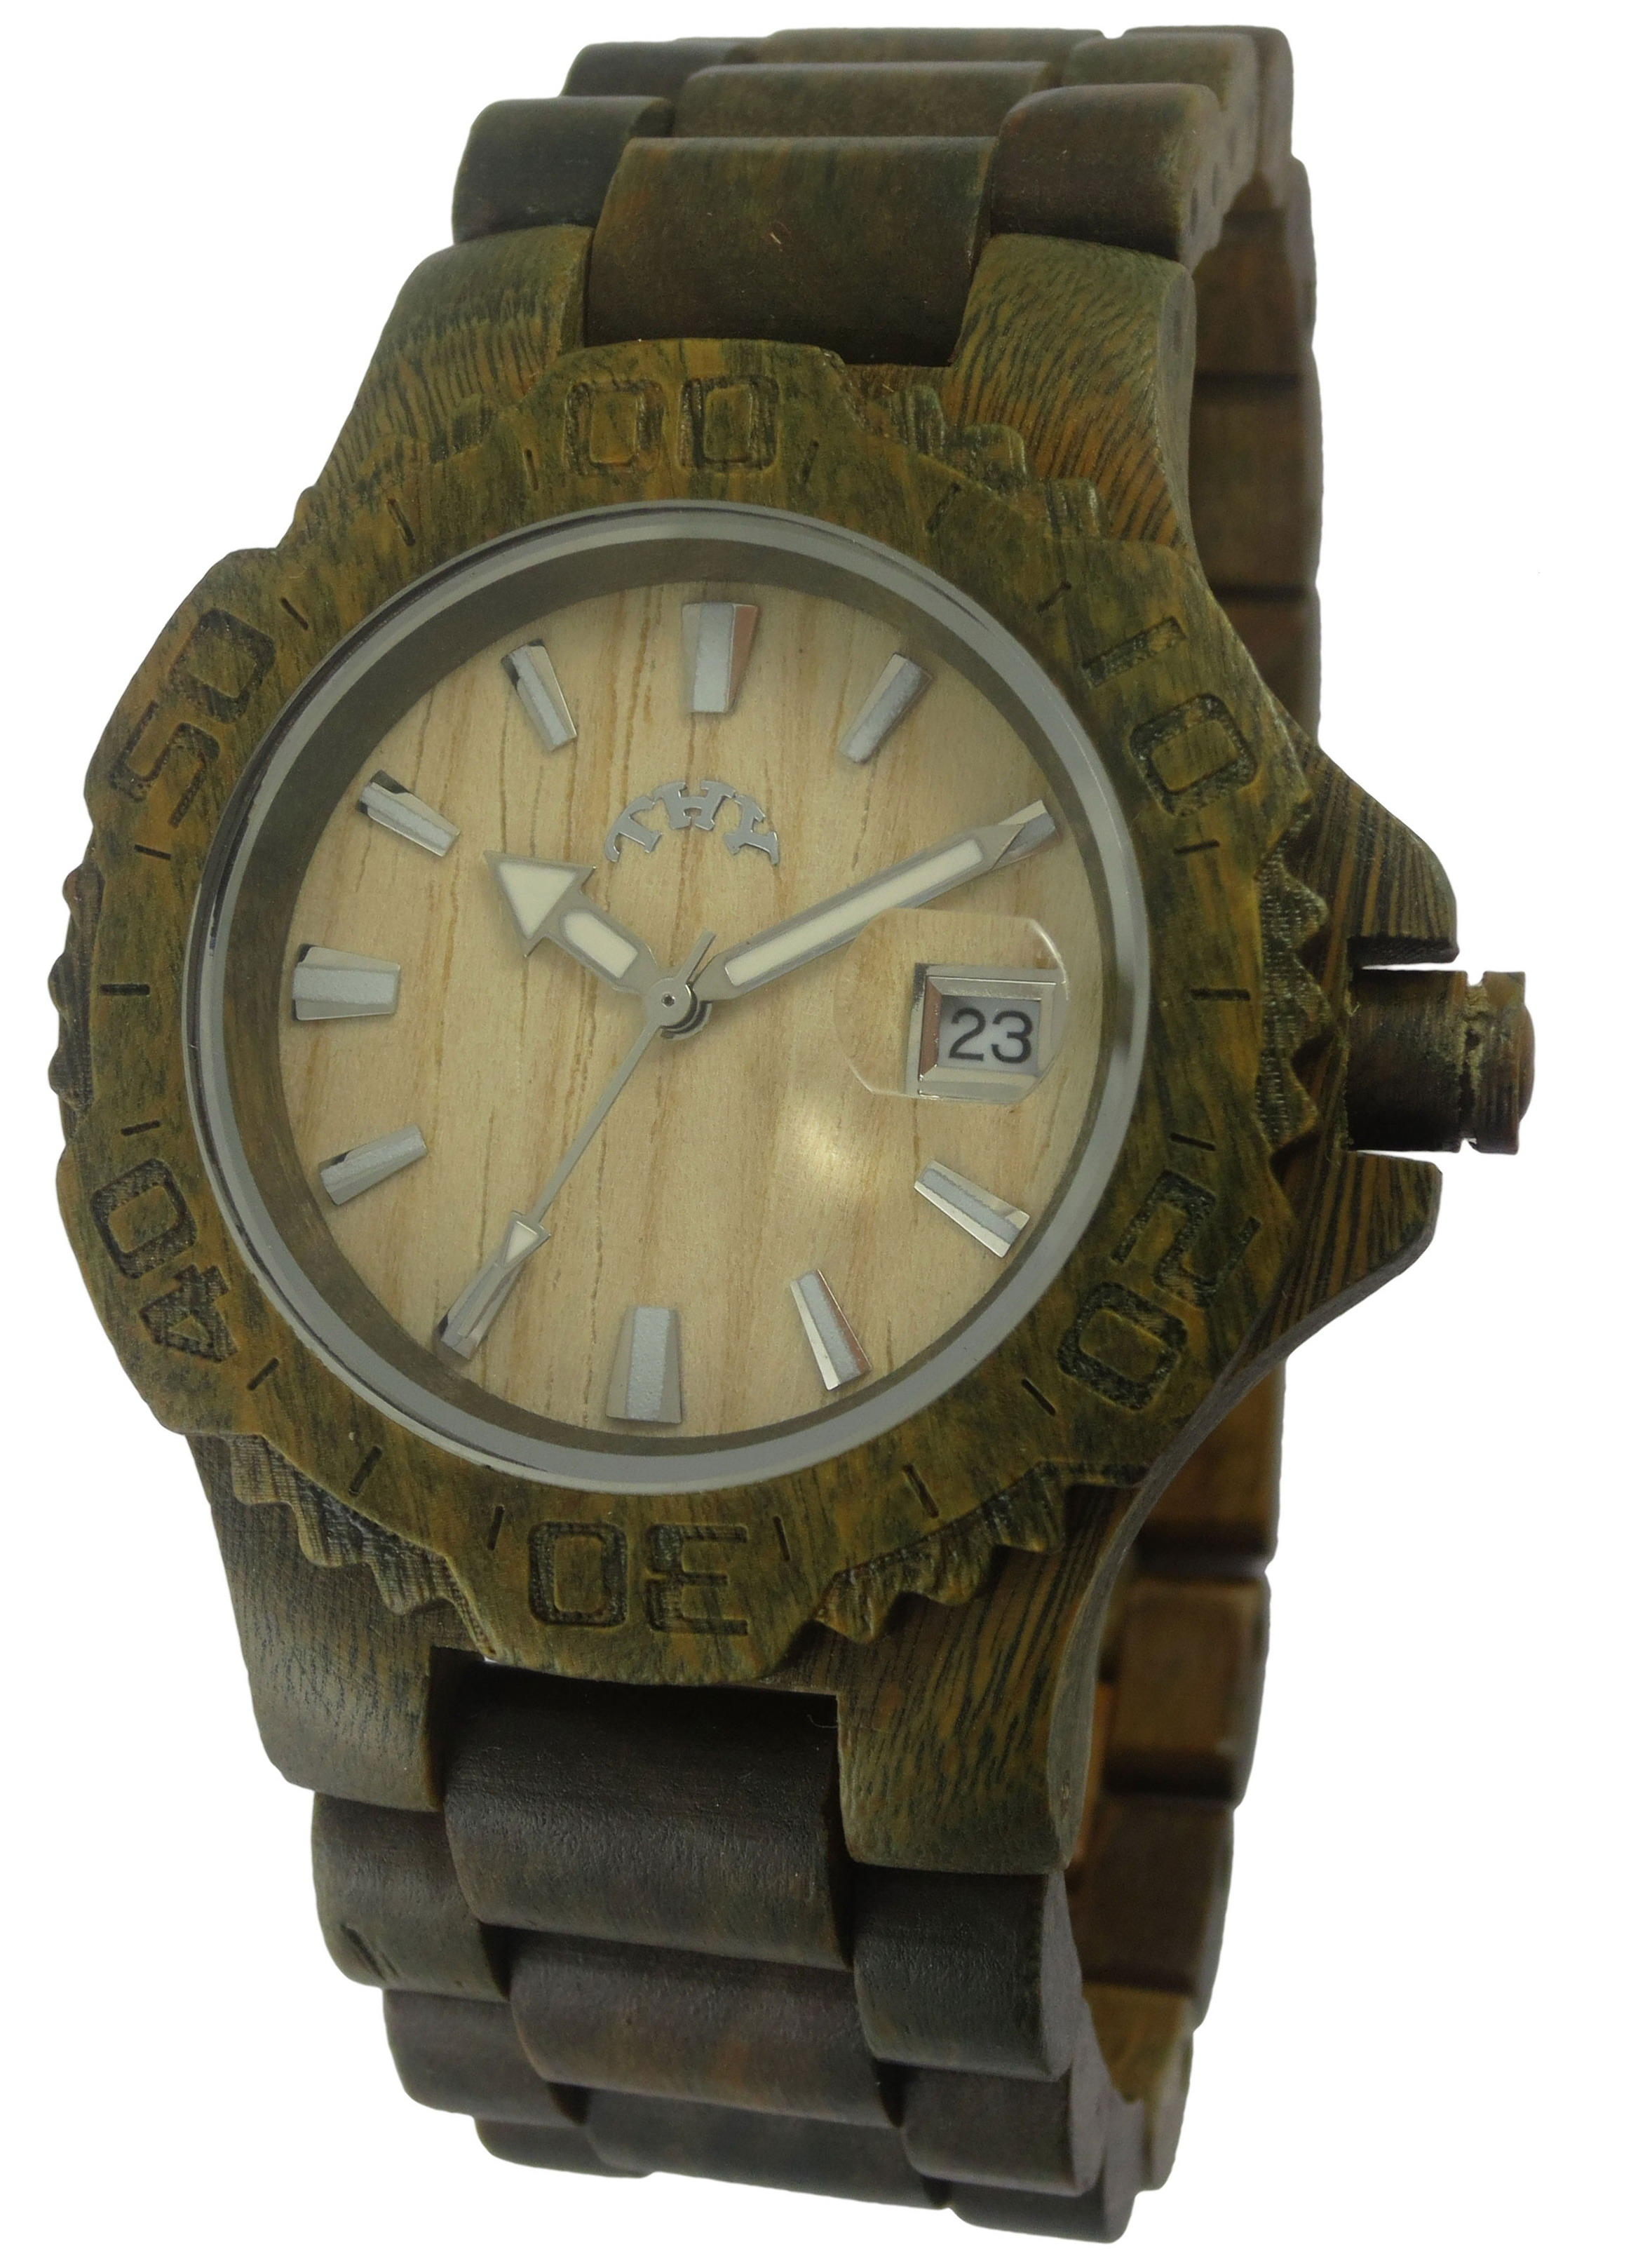 Mens Green Round White Dial Wooden Watch with 40 Mm Size W00008